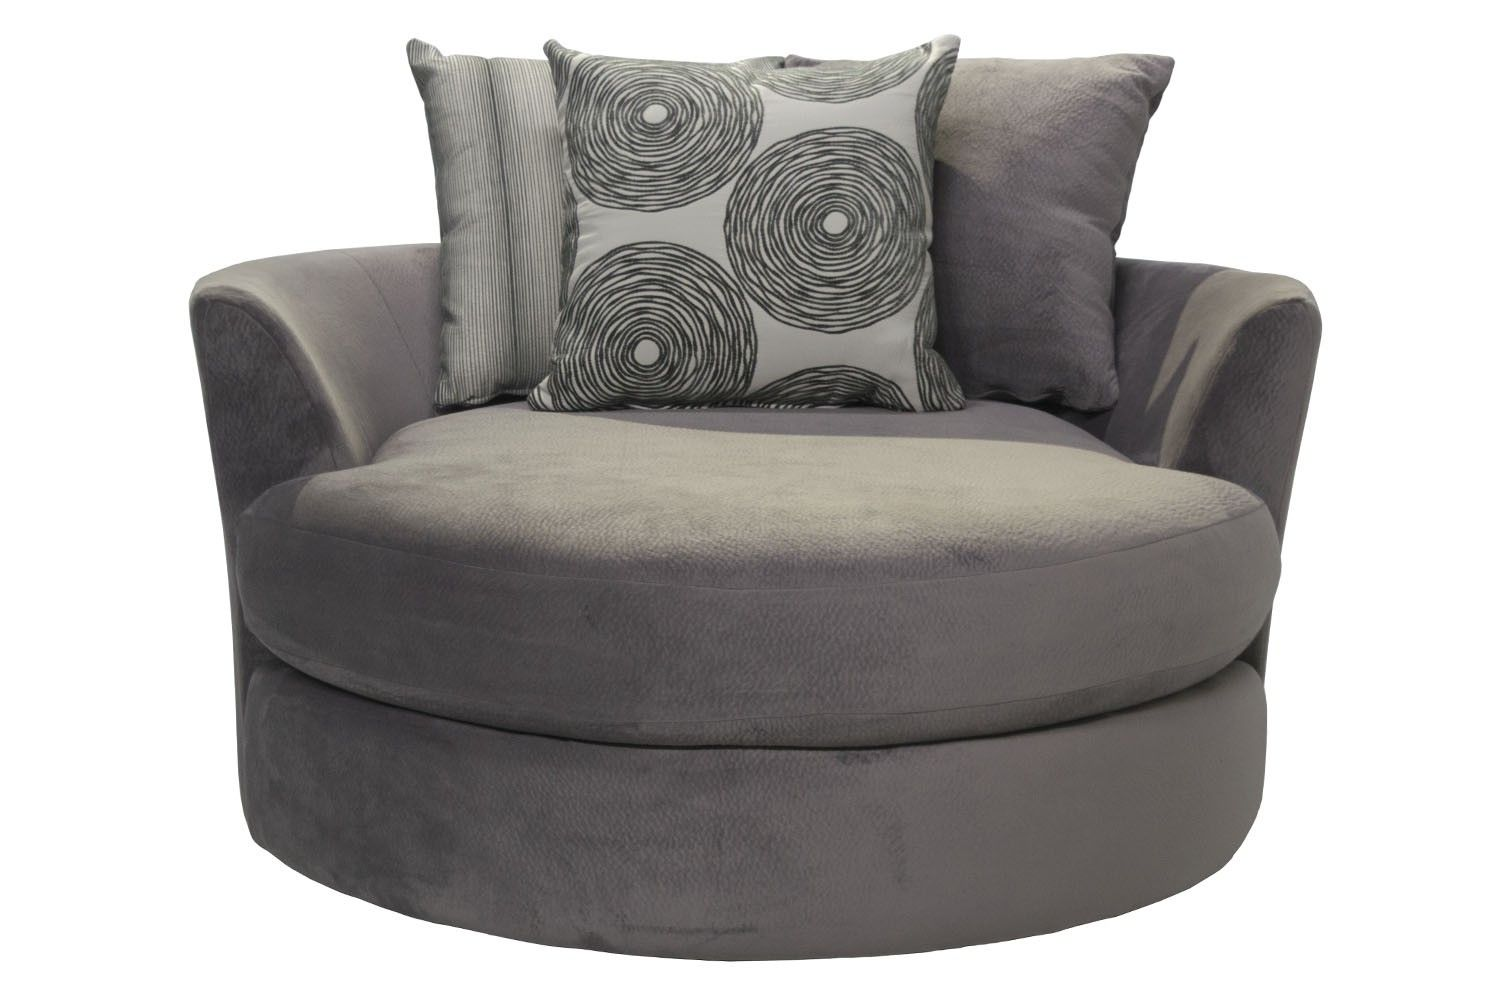 Merveilleux Key West Cuddler In Gray   Accent Chairs   Living Room | Mor Furniture For  Less